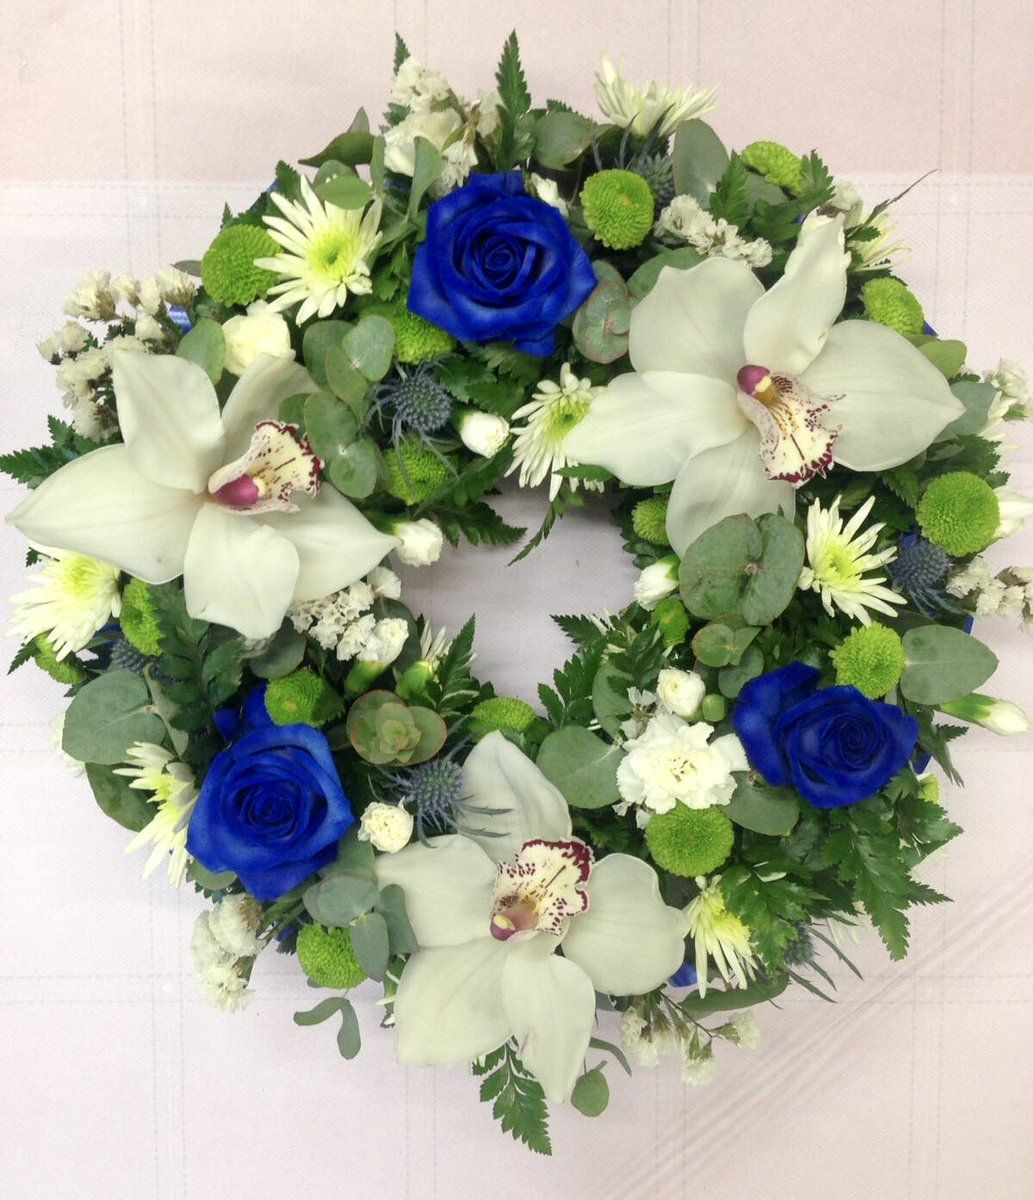 Beautiful Floral Tribute By Rosepetals Florist Of Hinckley Funeral Flowers Florist Floral